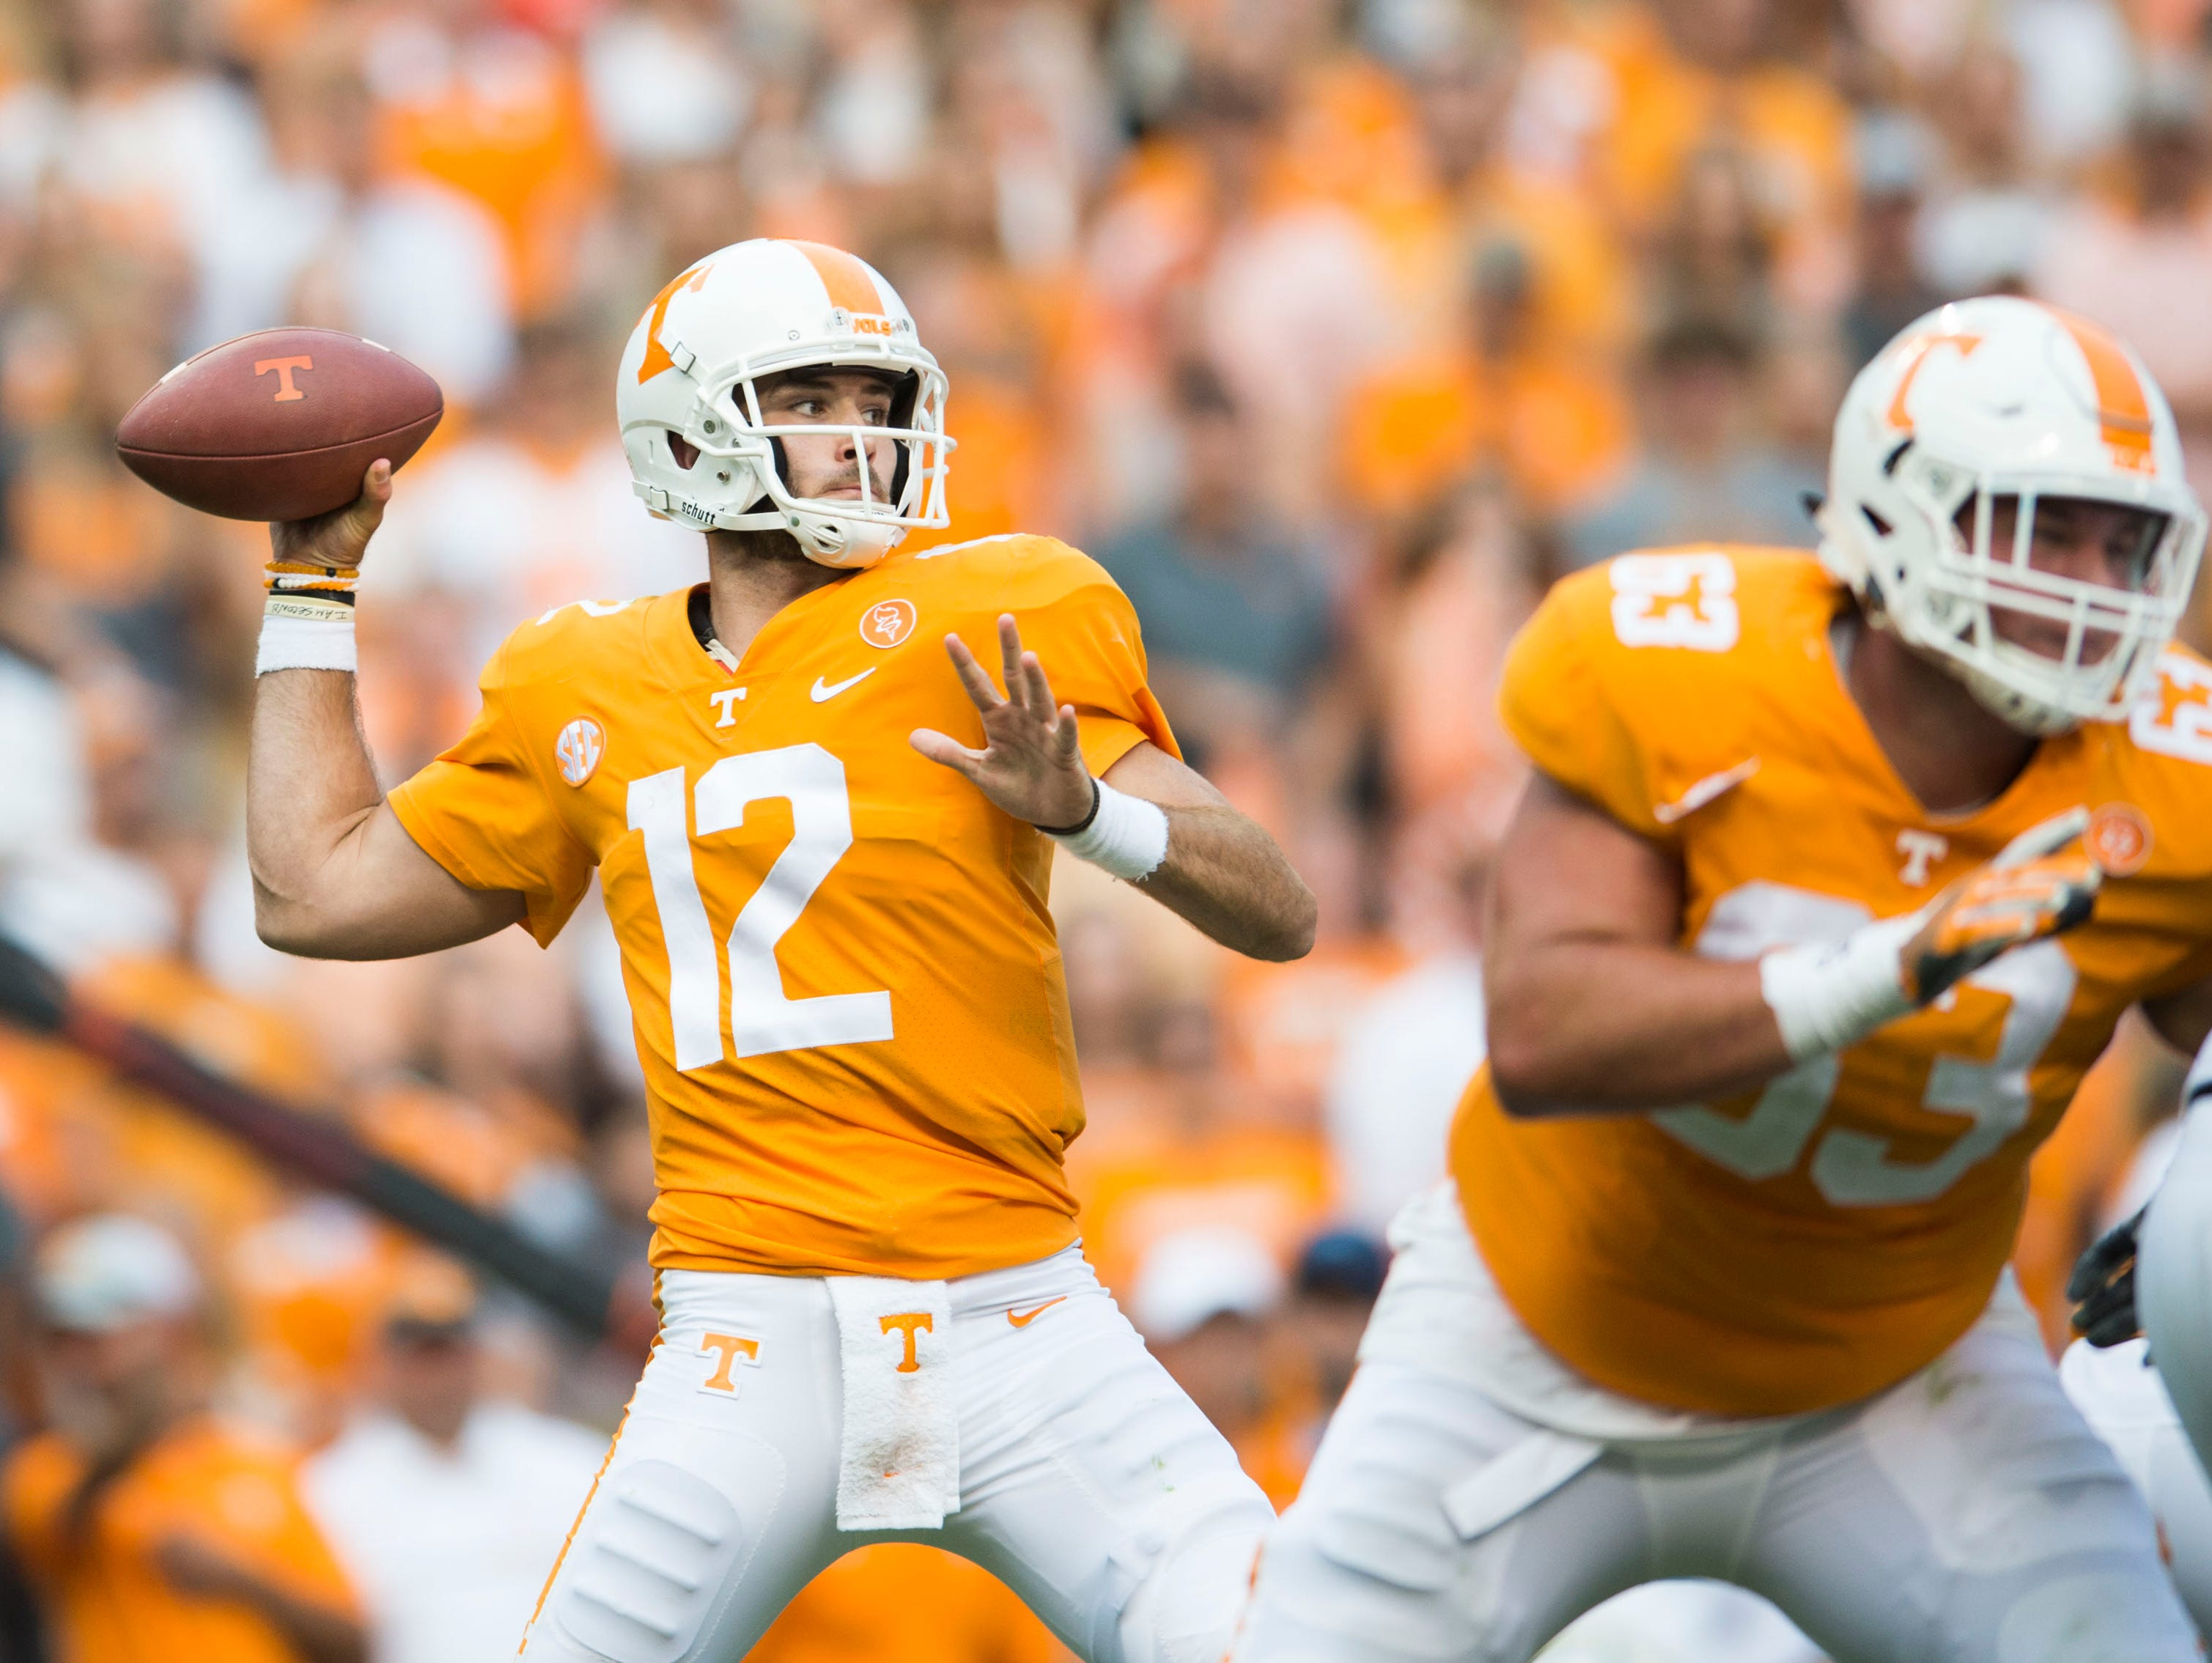 Vols quarterback Quinten Dormady (12) throws against Indiana State on Saturday, Sept. 9, 2017.